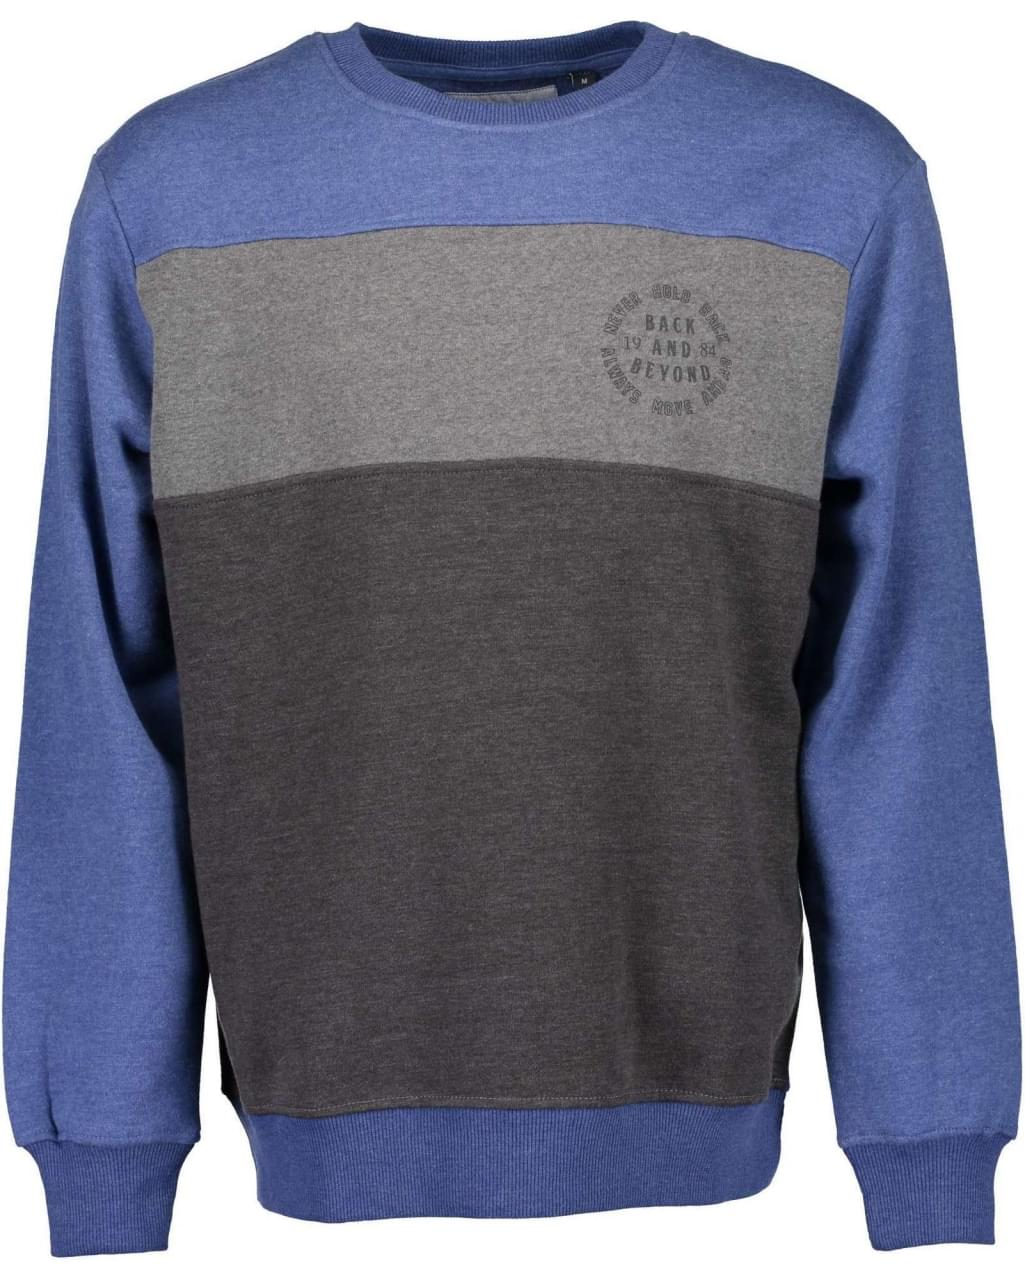 Blue Seven Back and Beyond Sweater Heren